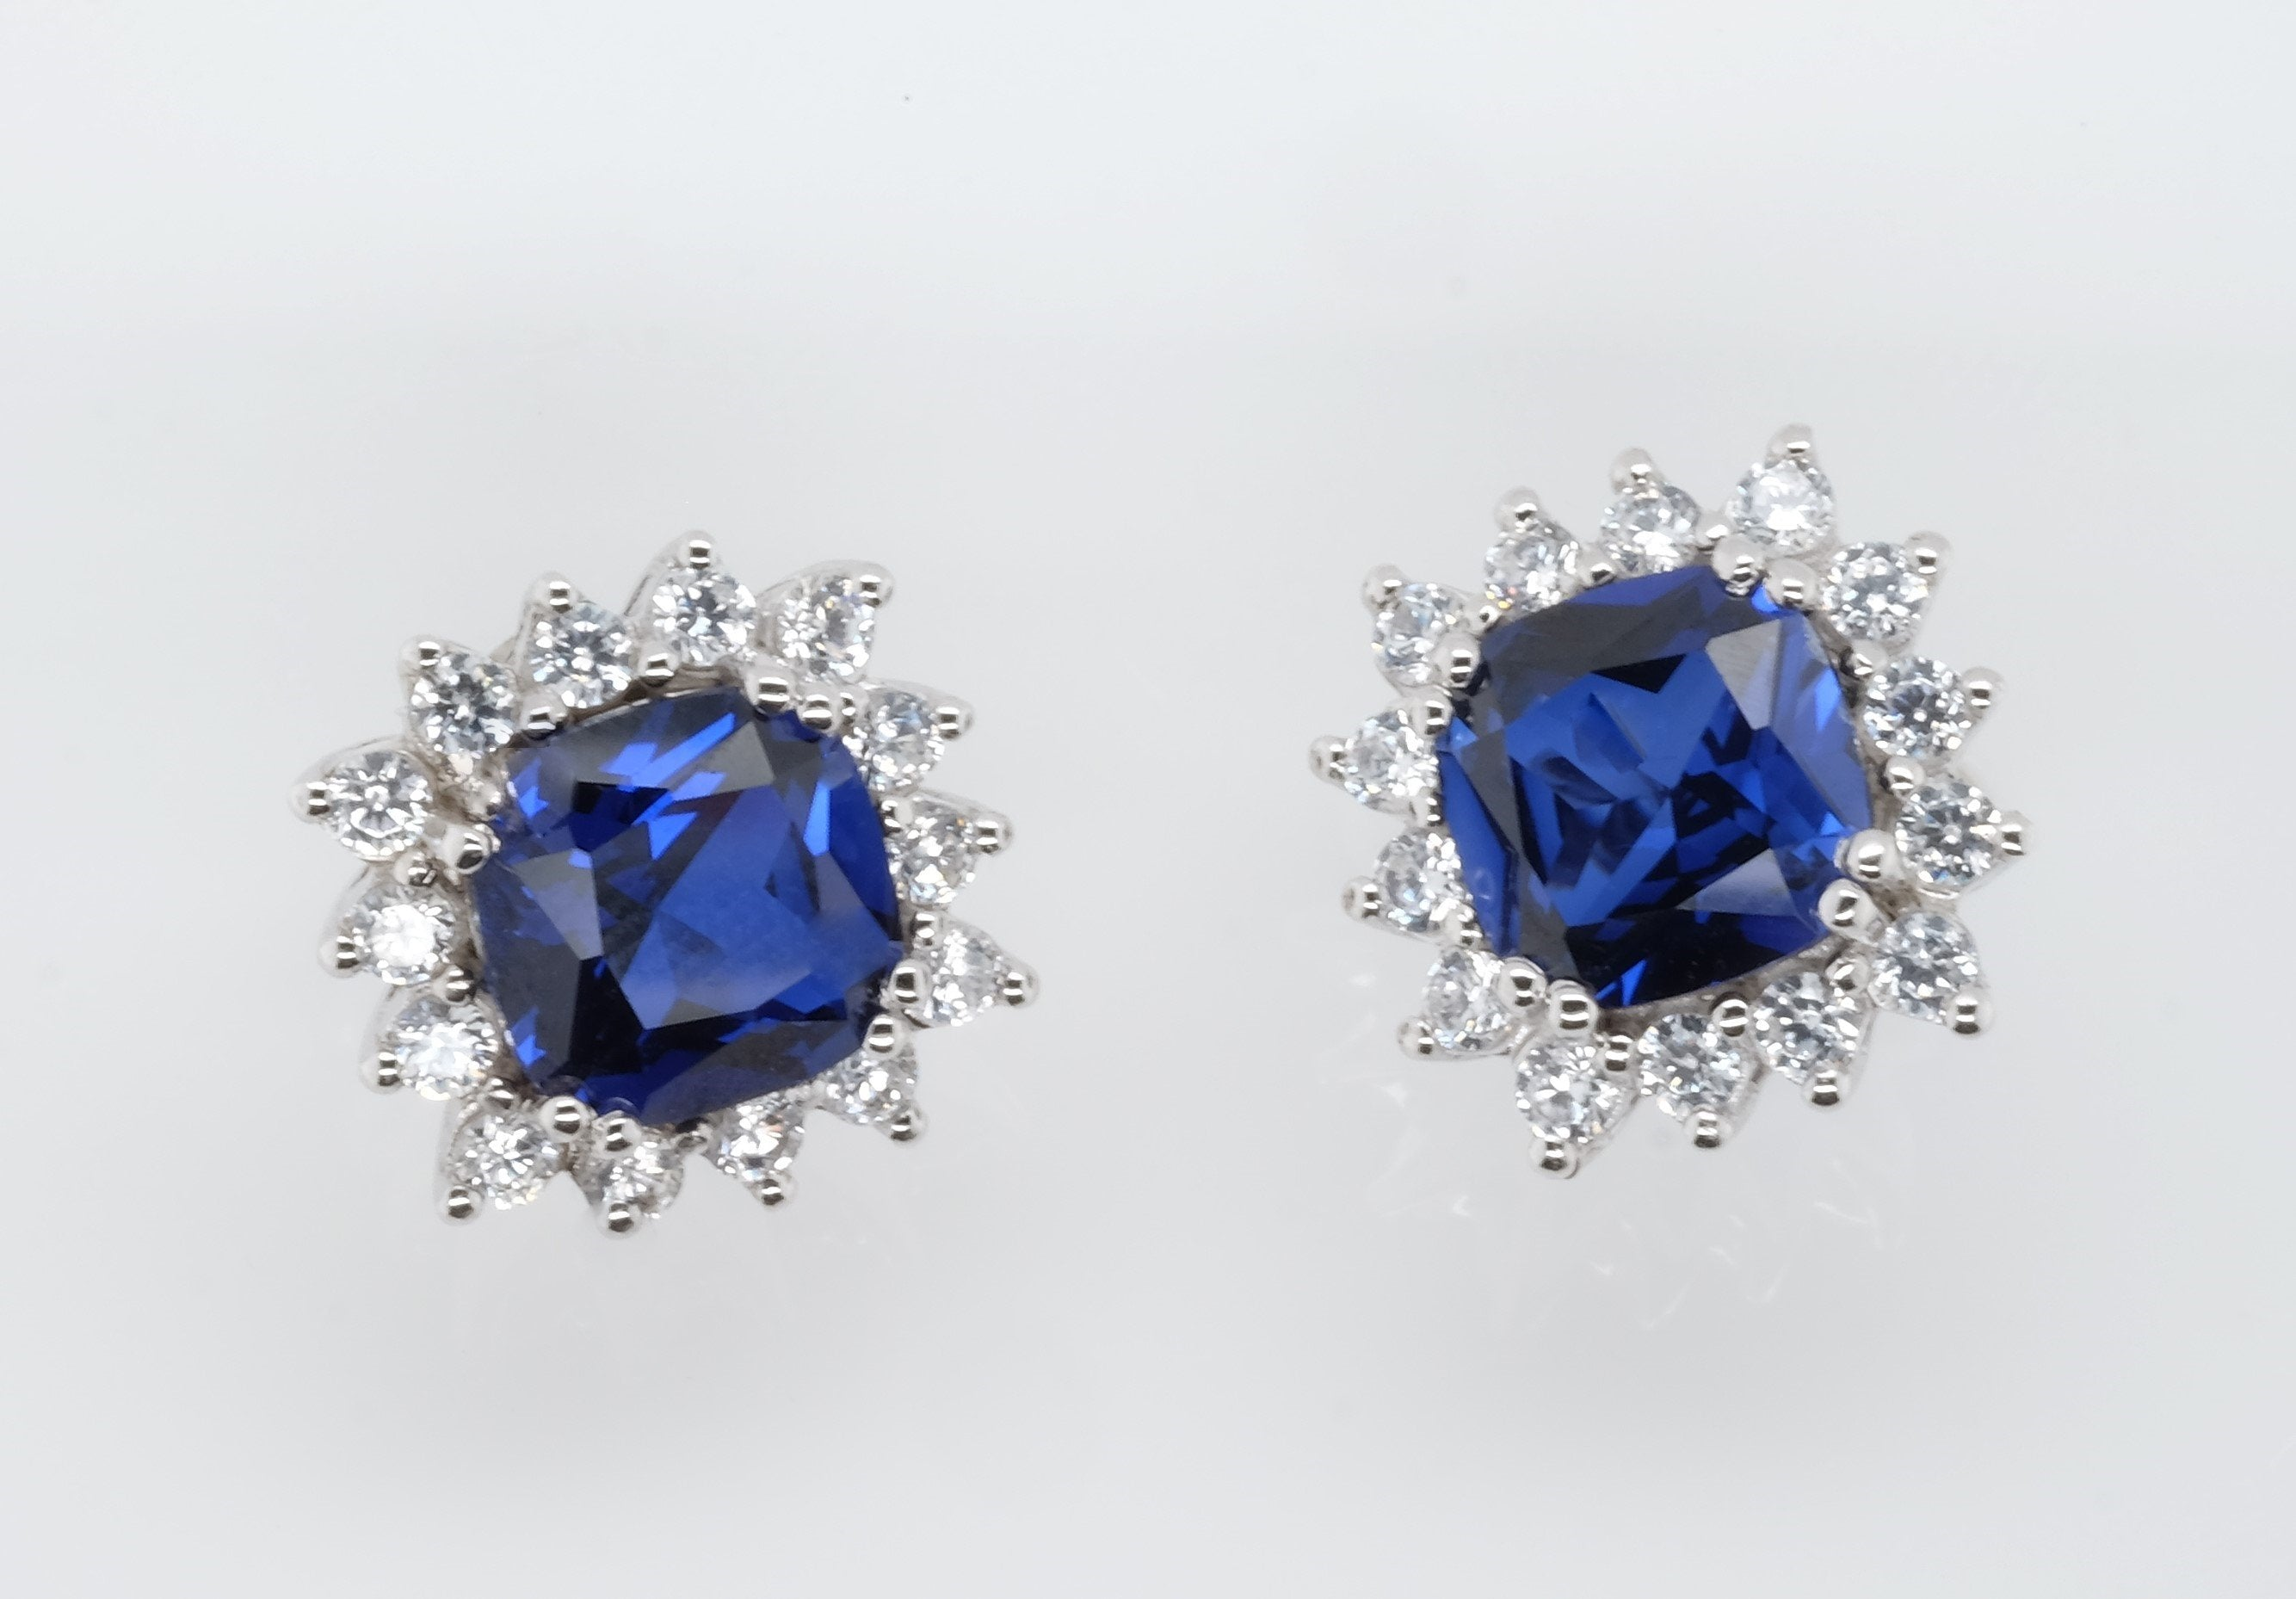 Goddess Astraea Bedazzle Blue Cushion-Cut Earrings